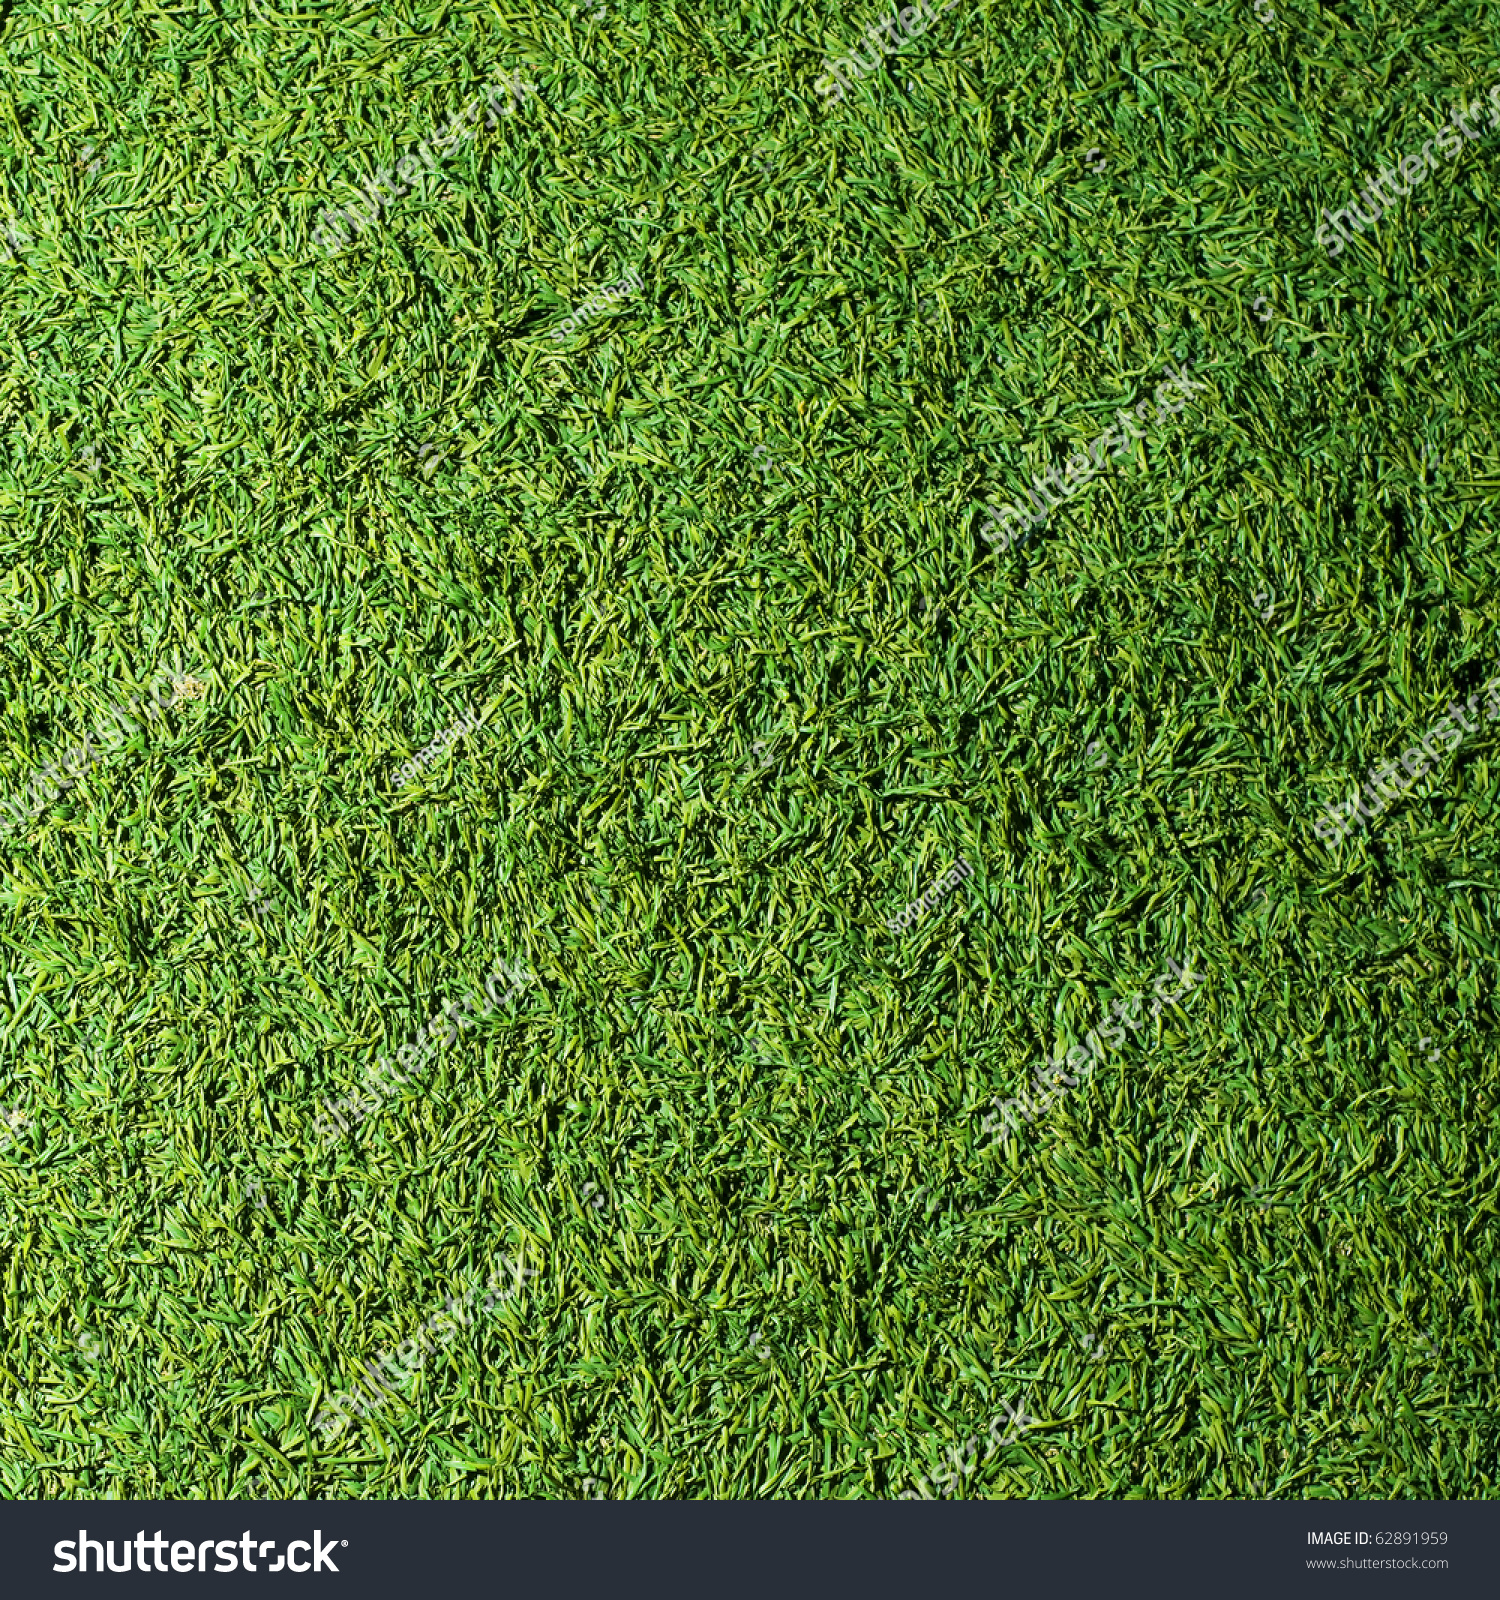 Beautiful grass texture of golf course stock photo for Pretty grass